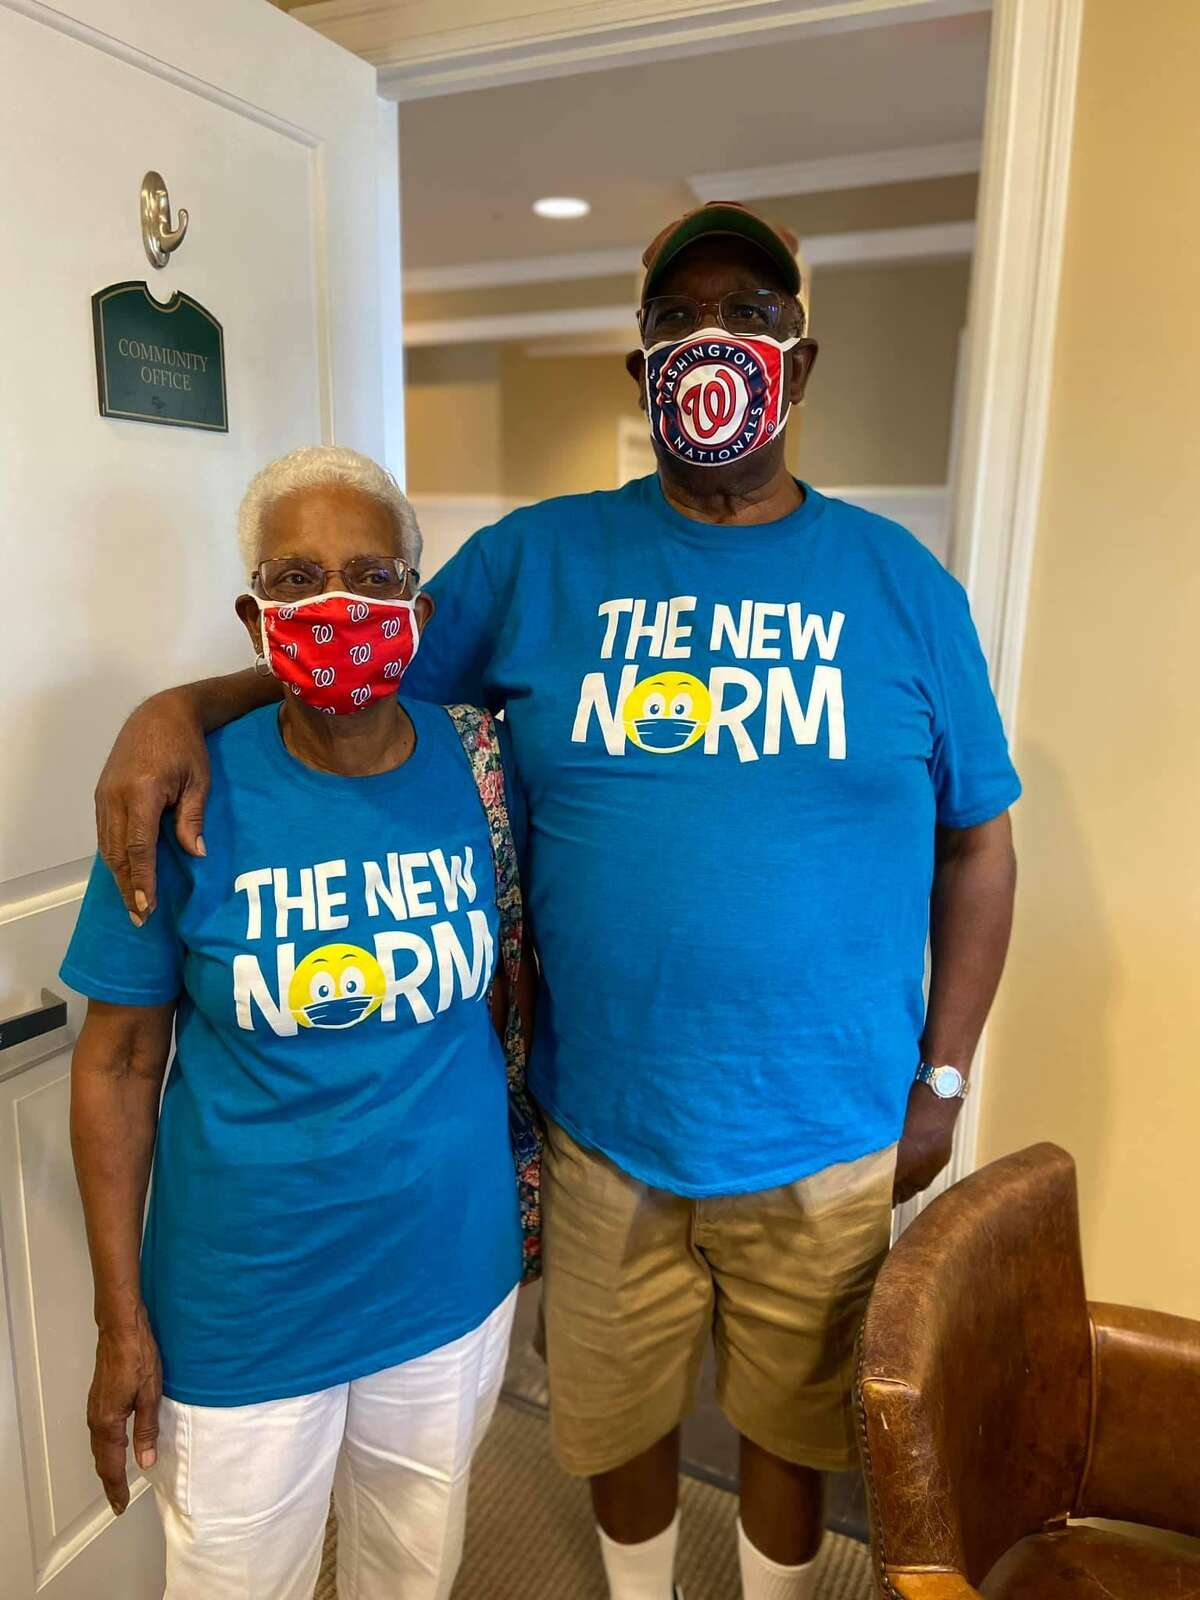 The message on their t-shirts says it all for this couple atthe Summit at Eastwyck Senior Independent Living Community. Local older adult living communities have seen an influx of residents, despite the pandemic.